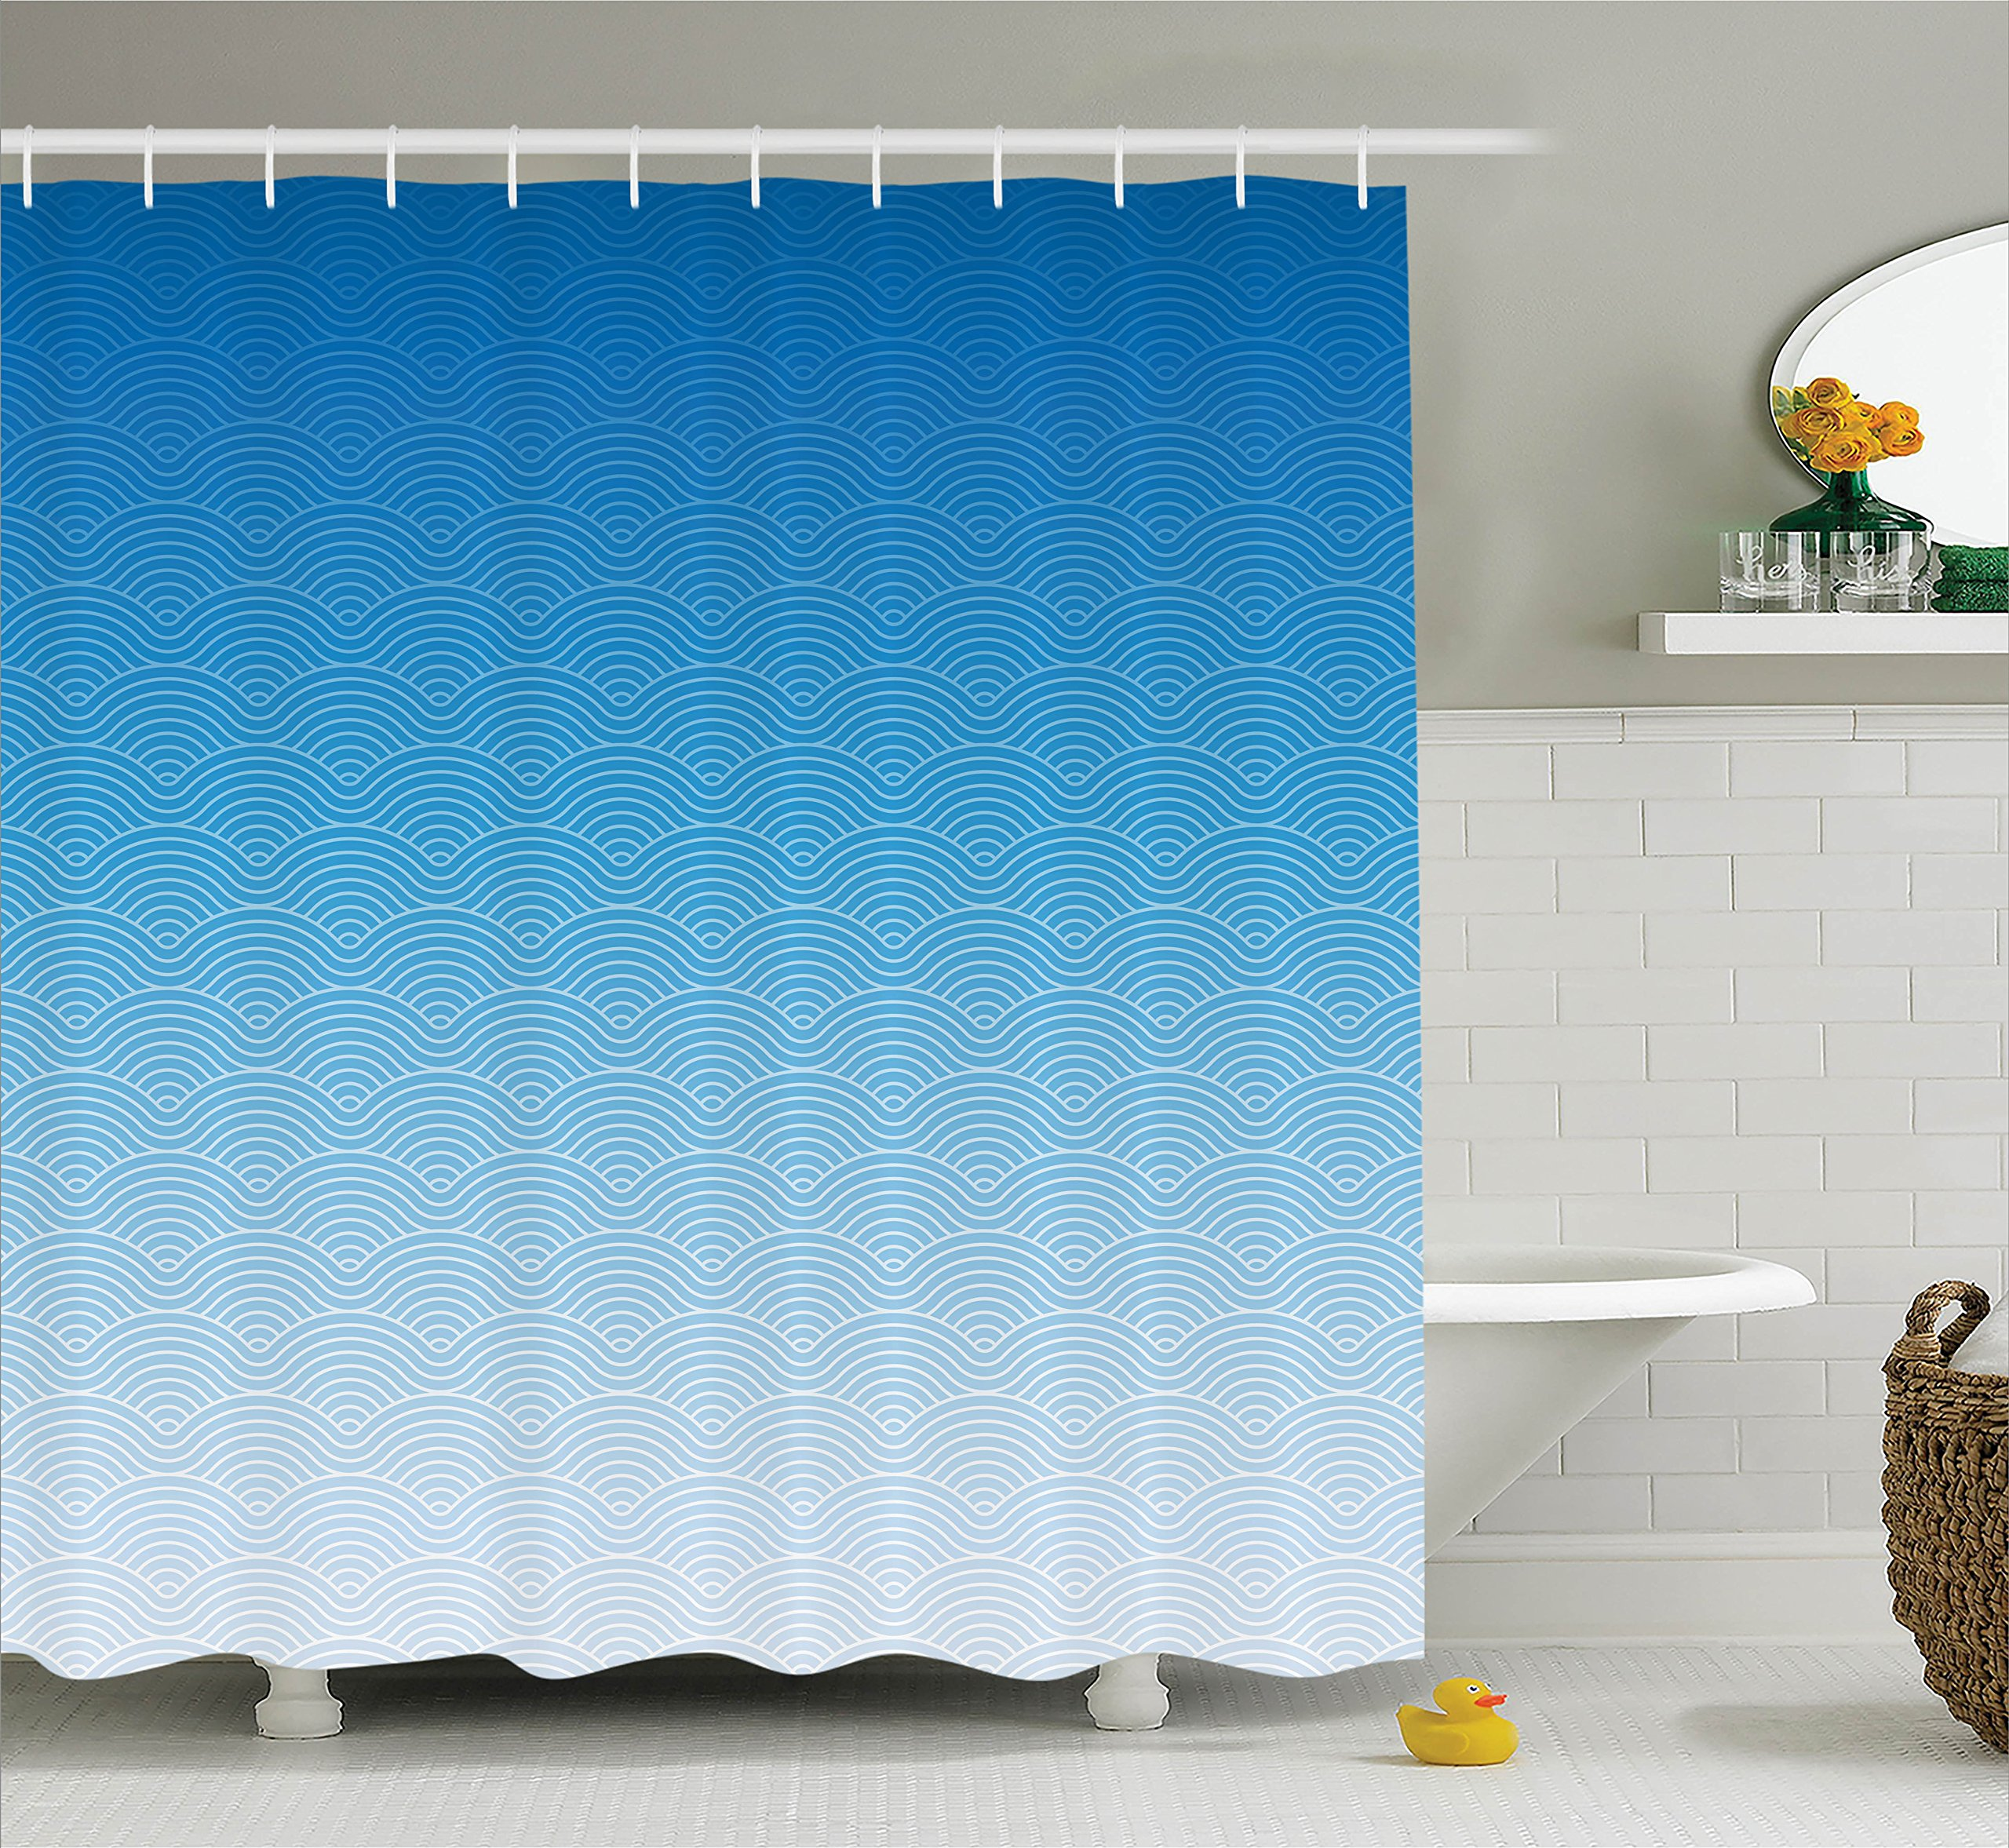 84 Inch Geometric Shower Curtain: Amazon.com